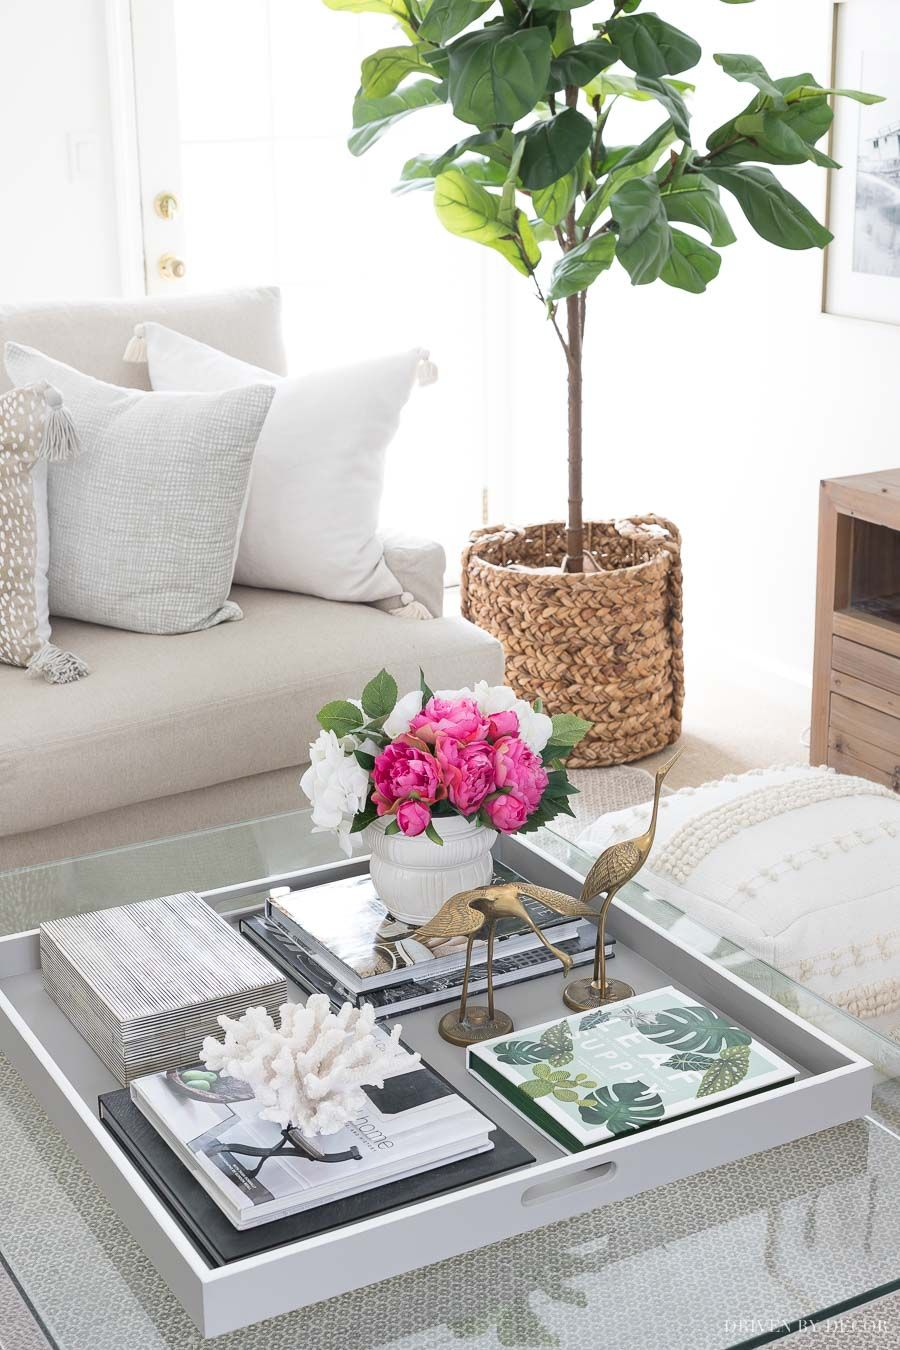 Coffee Table Decor Ideas Inspiration Driven By Decor Decor Diy Home Decor Bedroom D In 2020 Table Decor Living Room Coffee Table Decor Tray Modern Coffee Table Decor